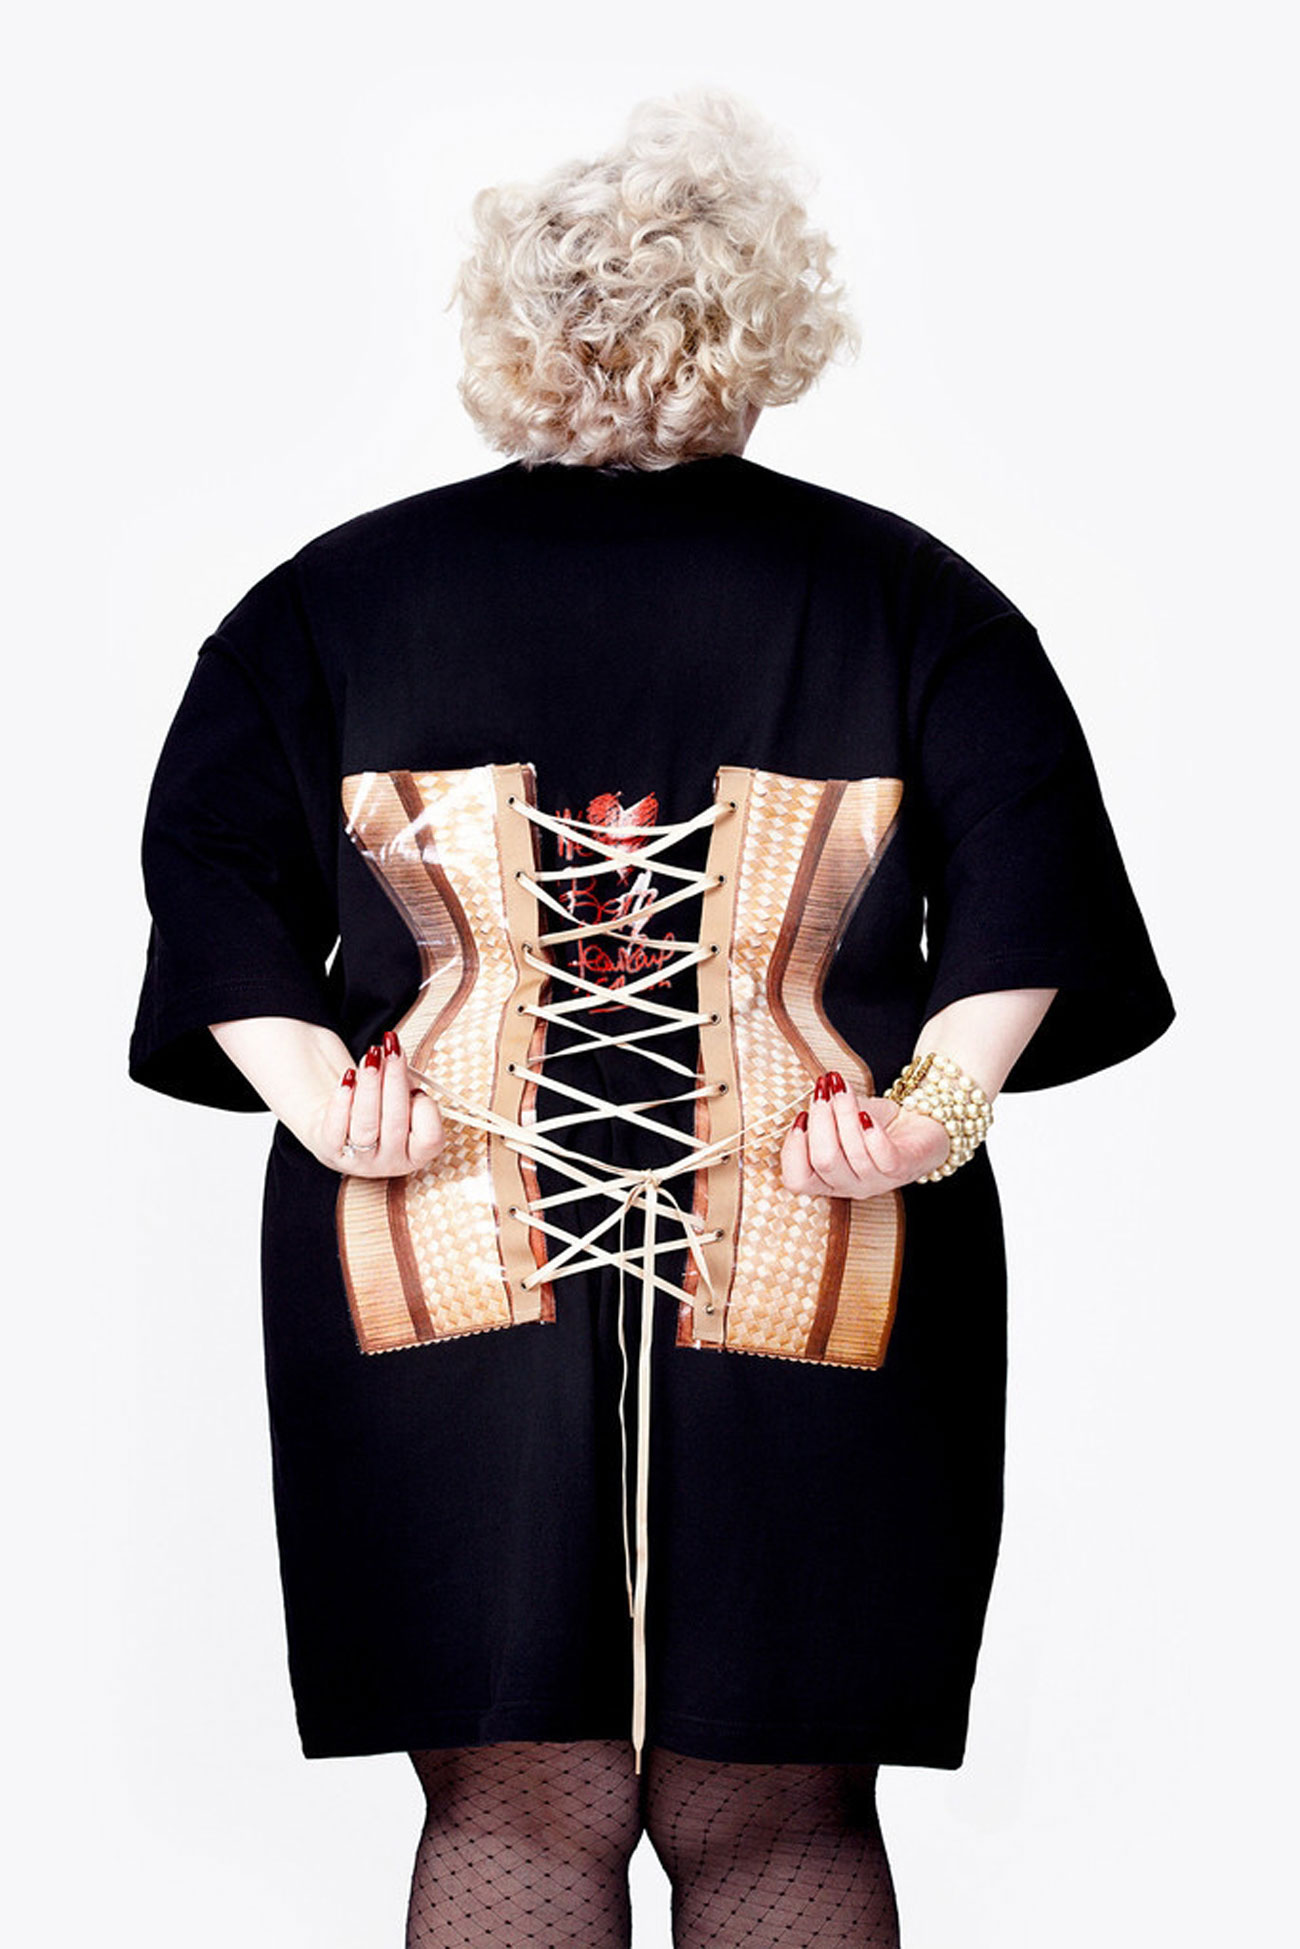 jean paul gaultier beth ditto back